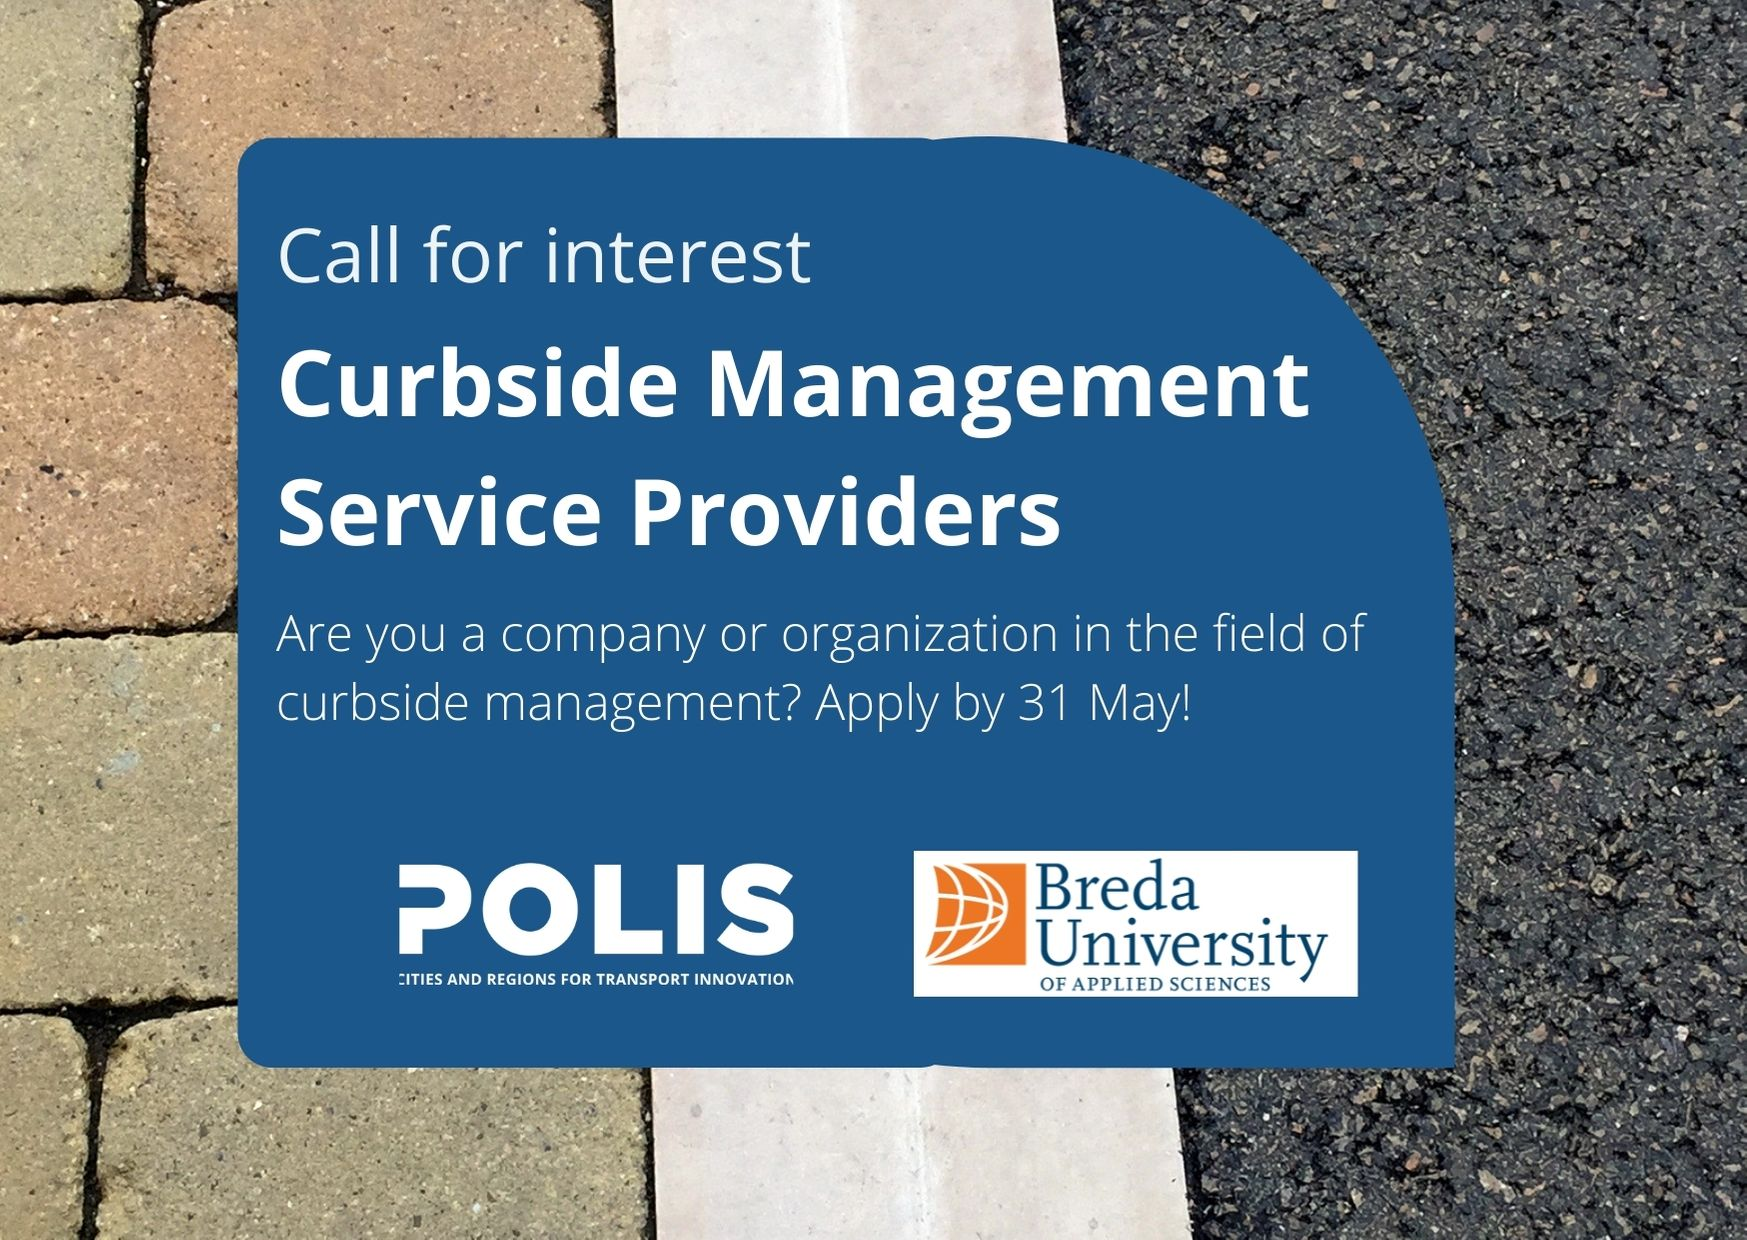 Call for Interest: Curbside Management Services Providers